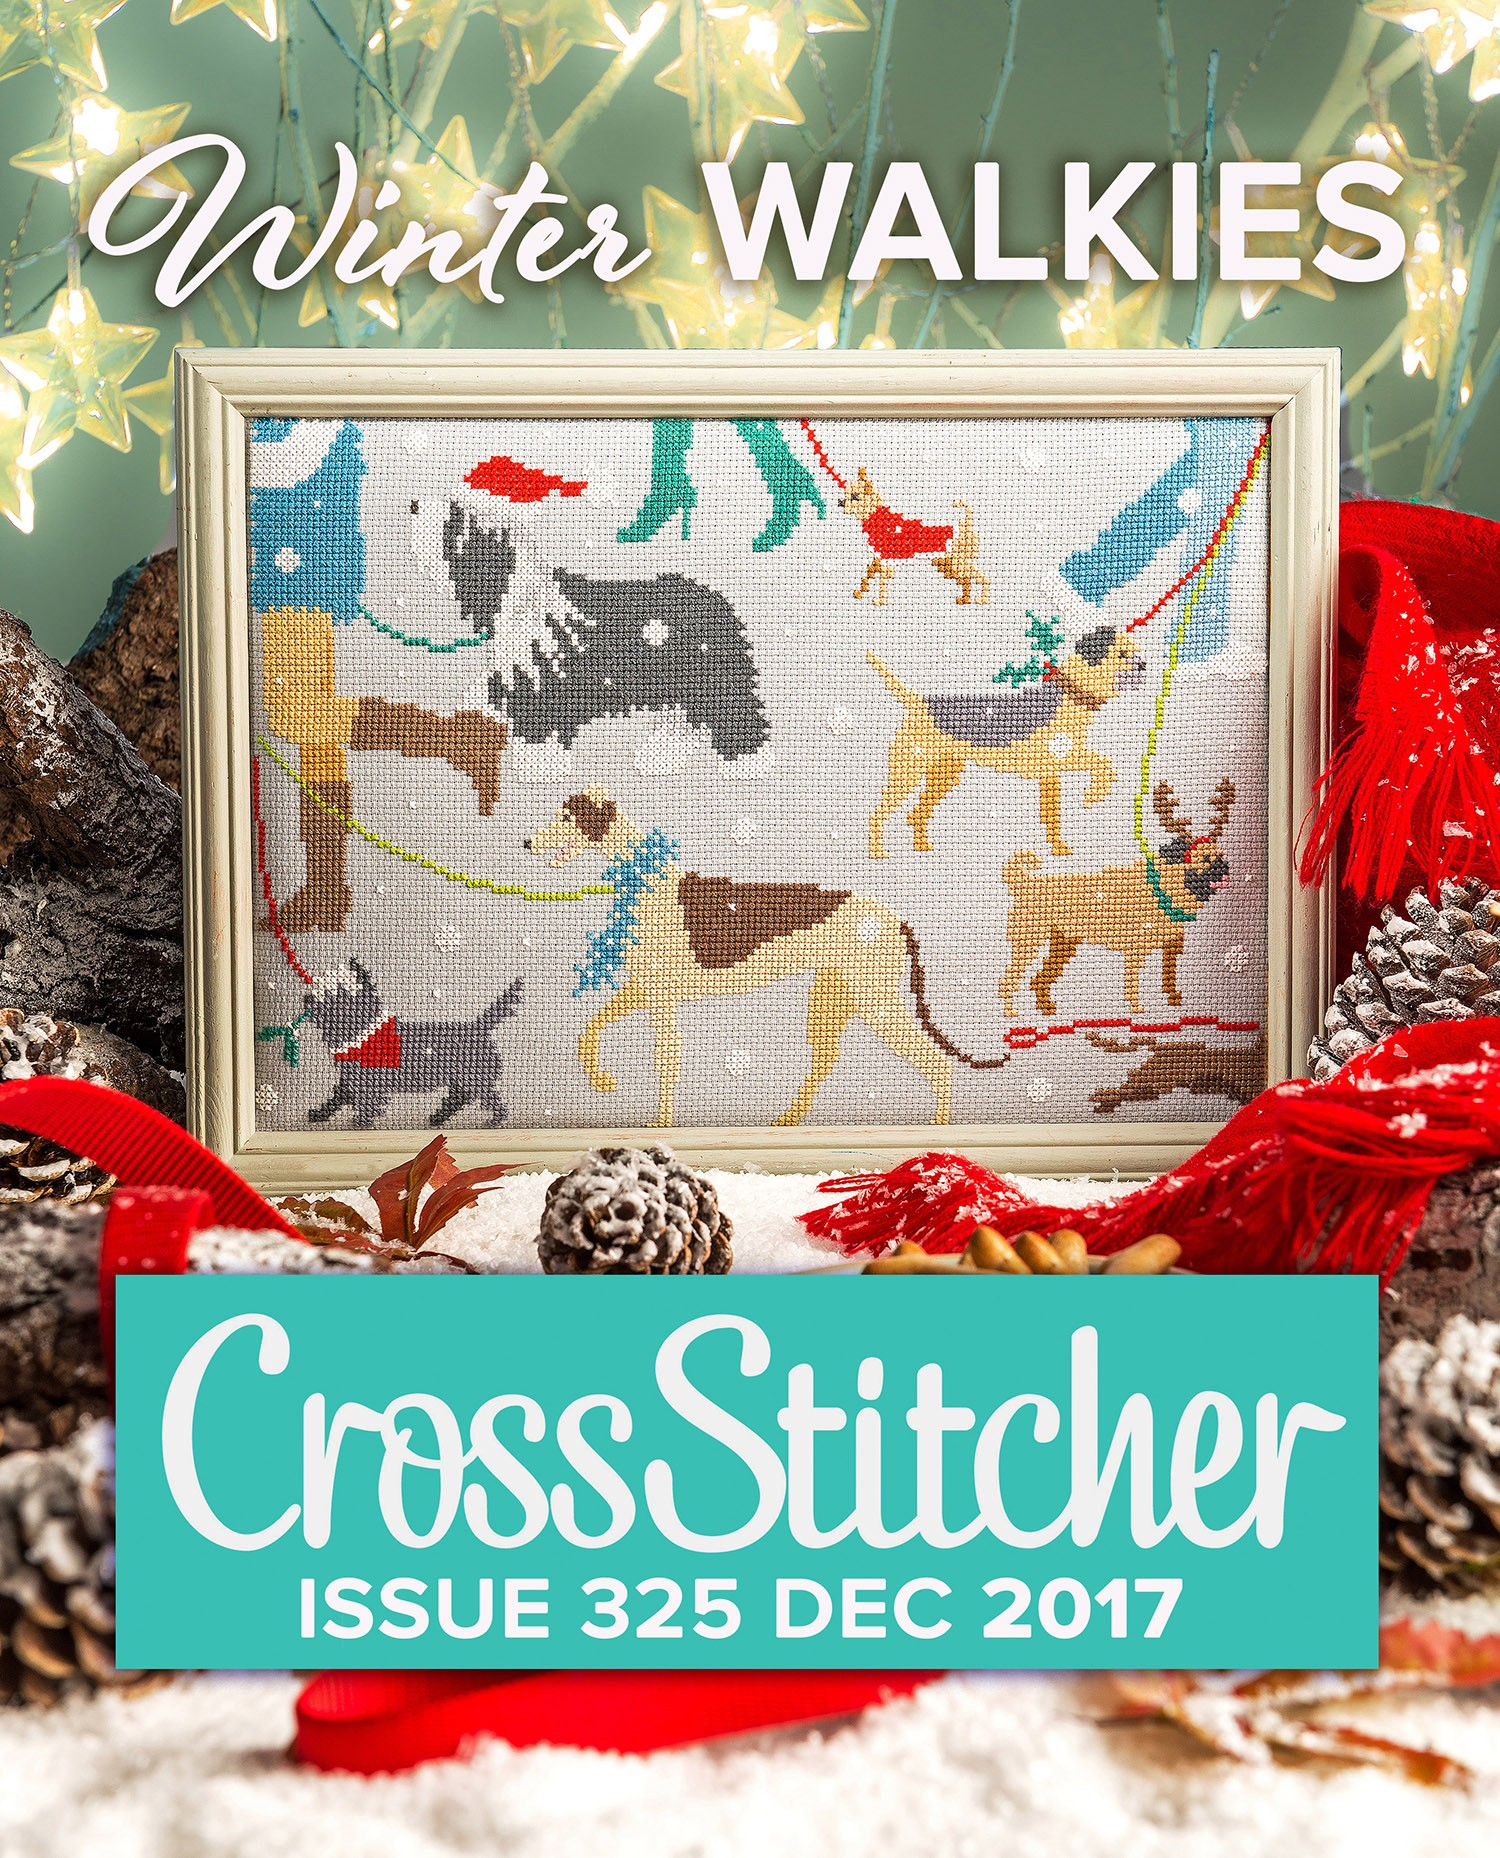 Cross Stitcher Project Pack - Winter Walkies 325